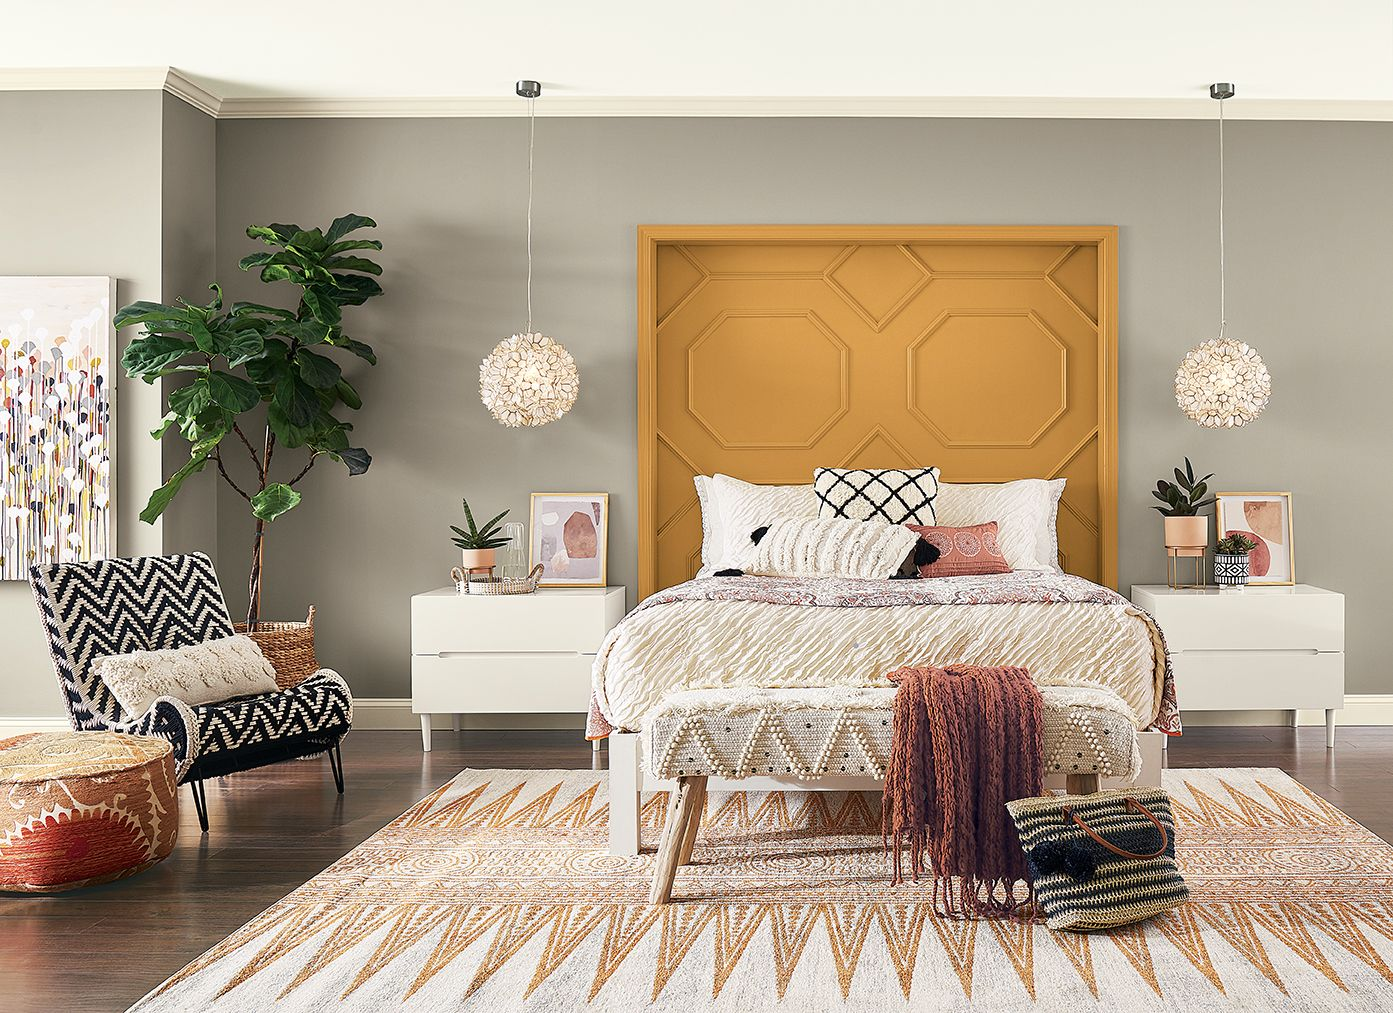 Free Spirit (With images) Sherwin williams colors, Room